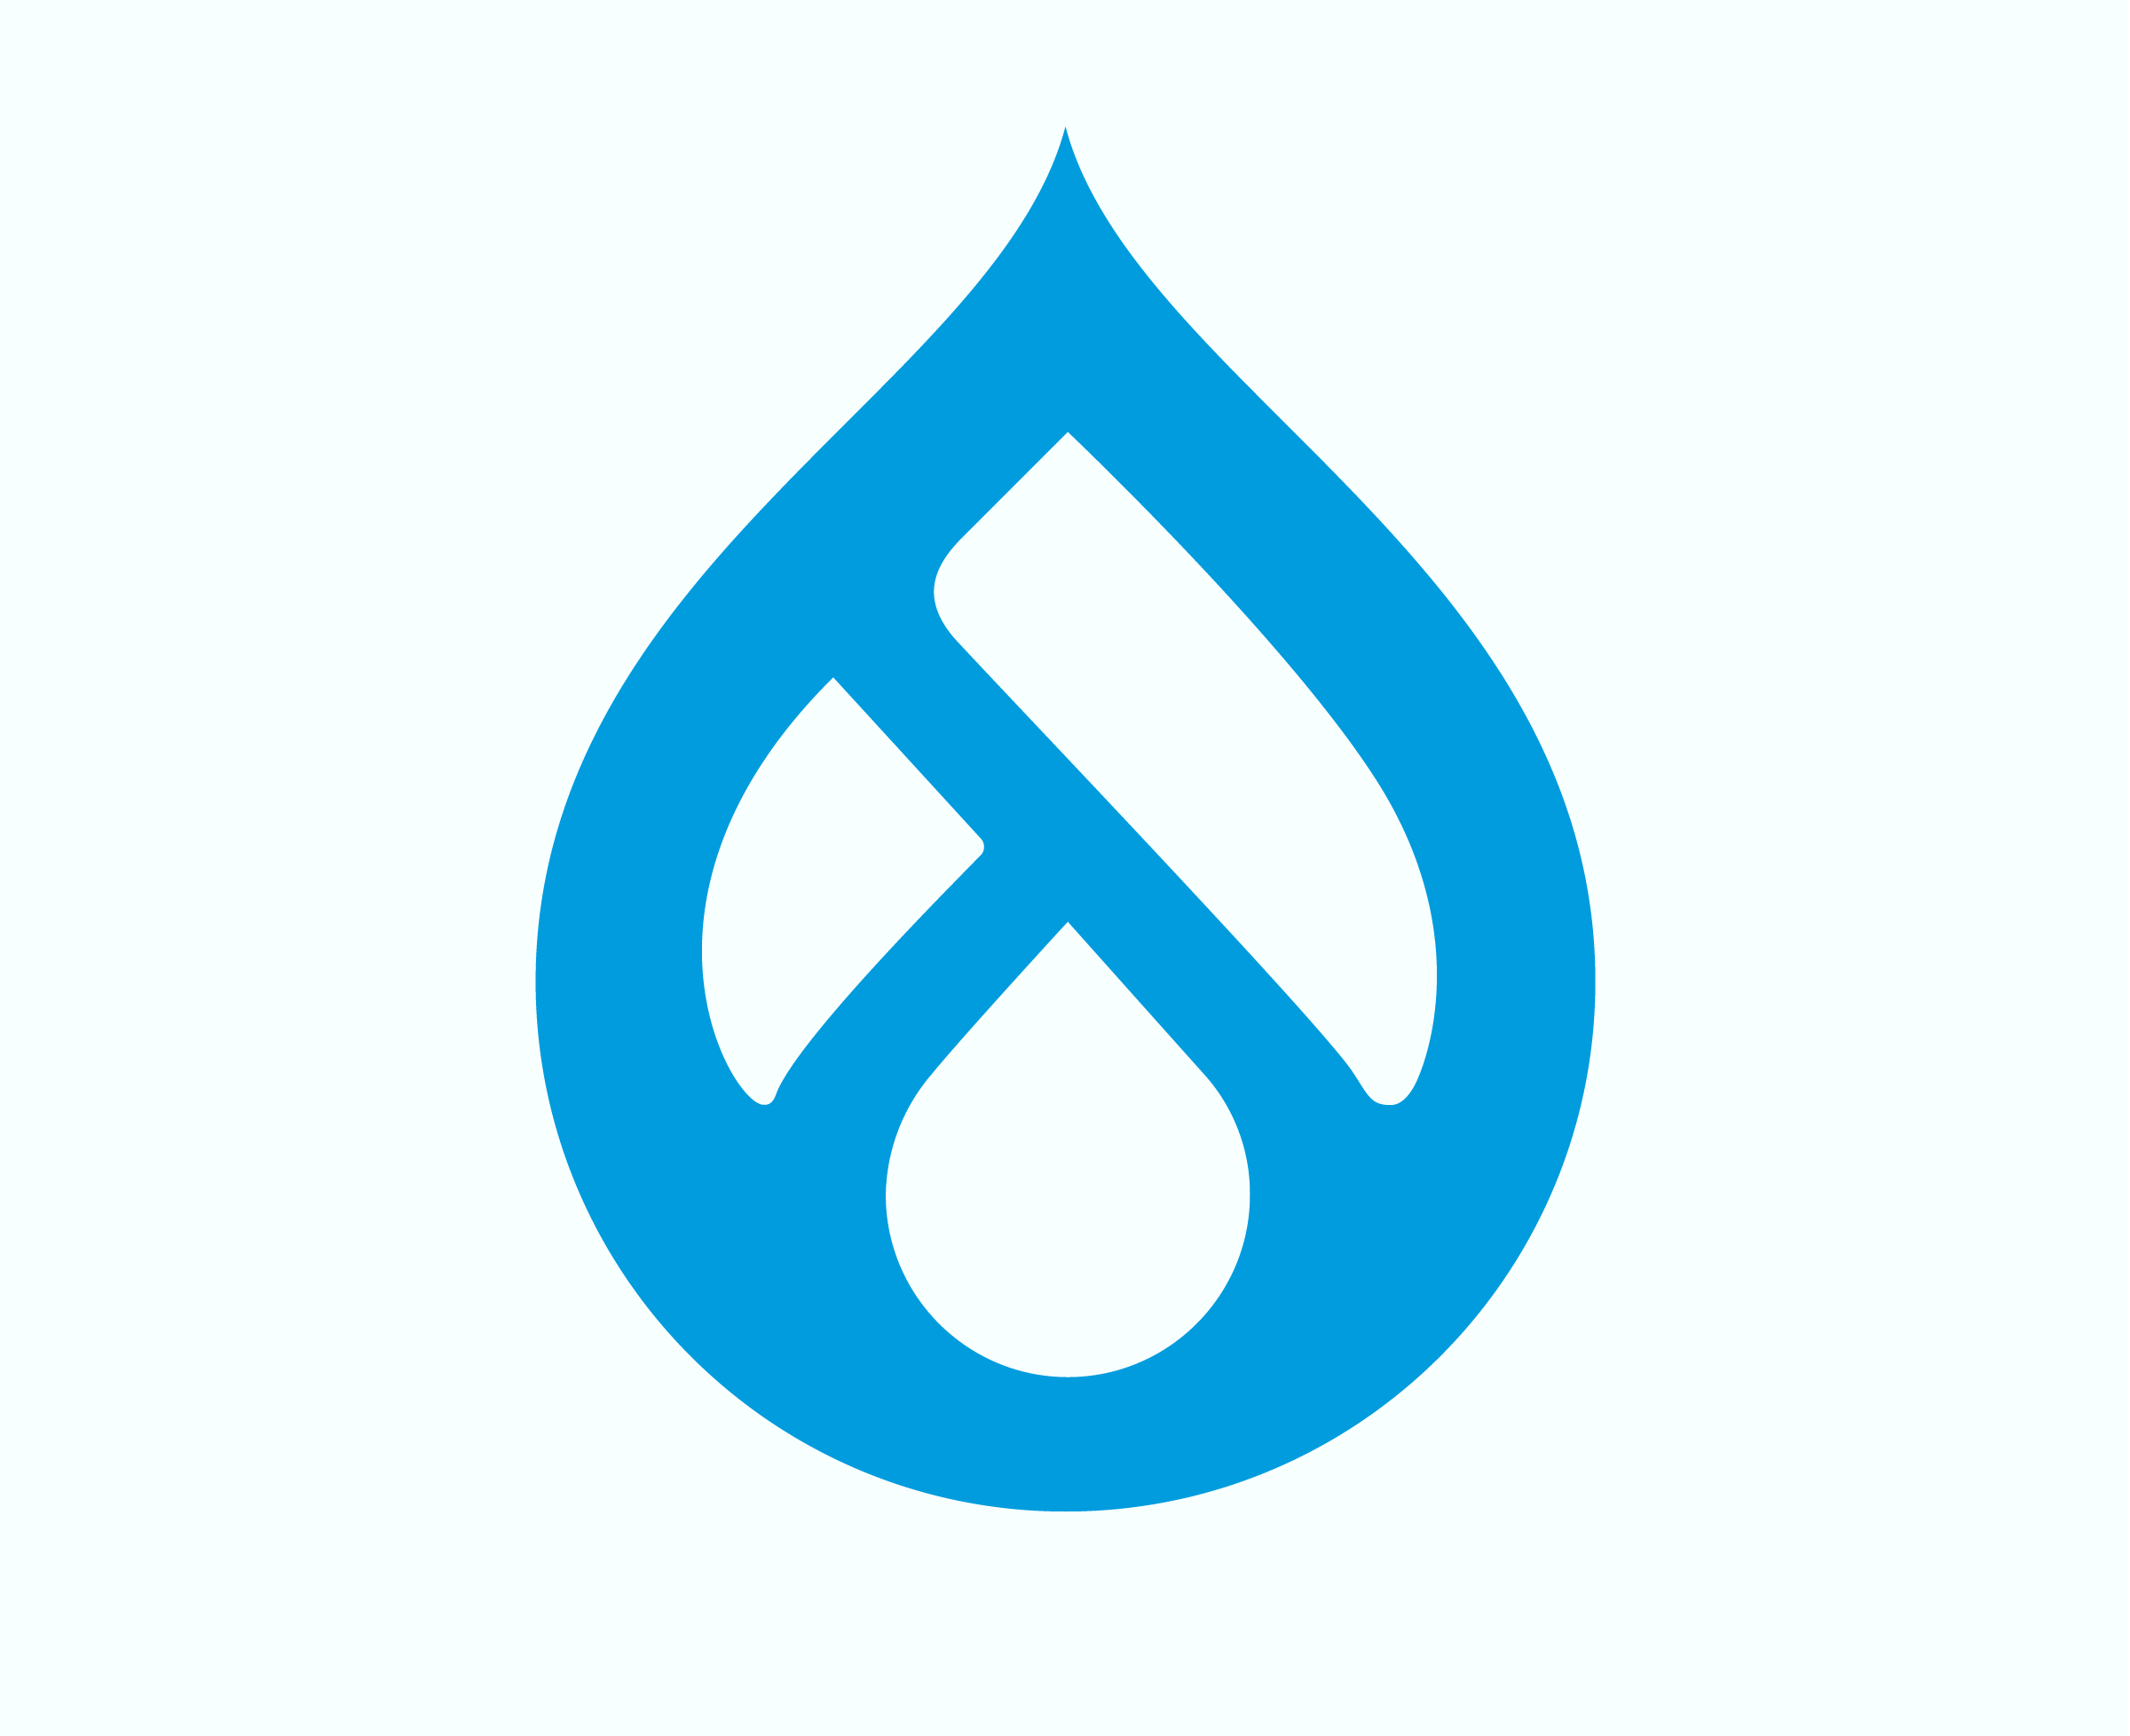 Drupal 9 logo on tranquil background